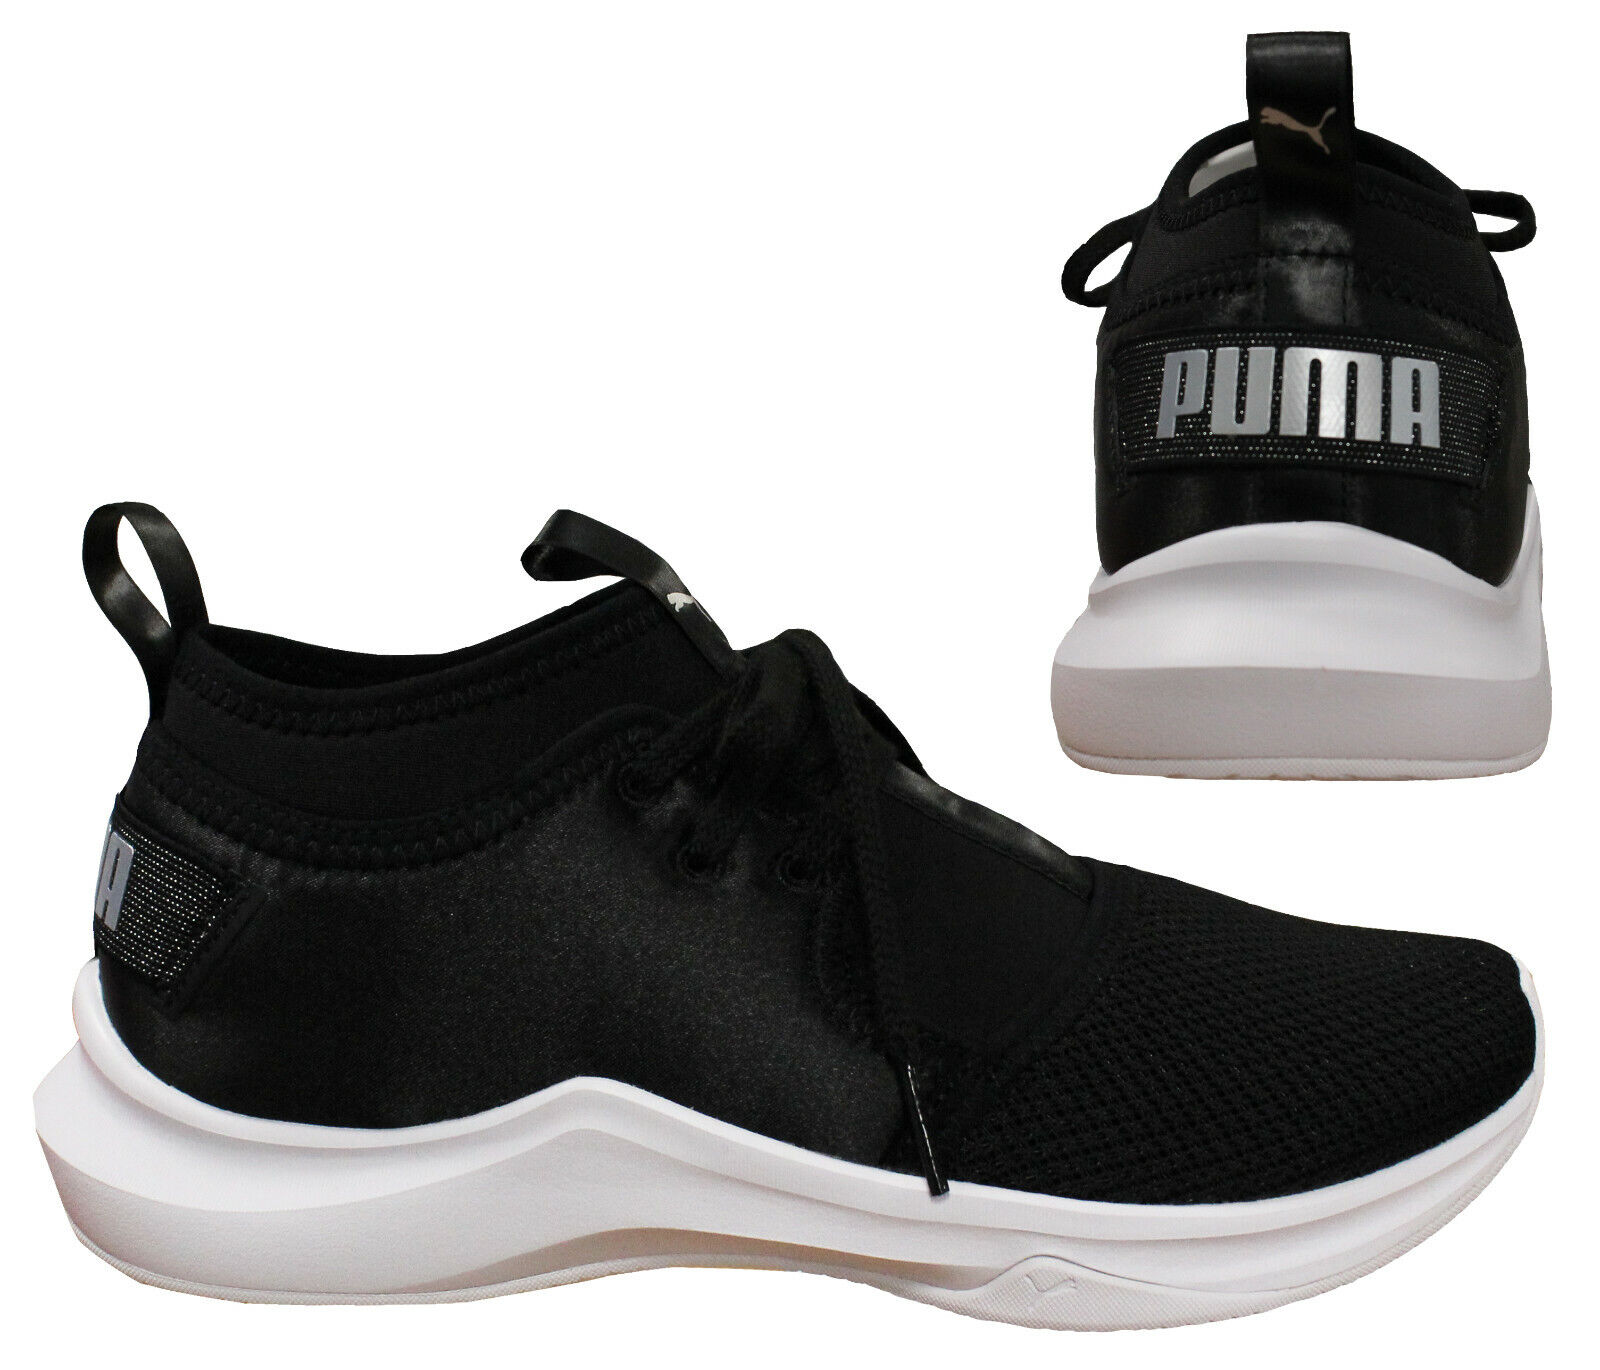 Details about Puma Phenom Low Satin En Pointe Womens Trainers Black Lace Pull On 190969 01 B2A